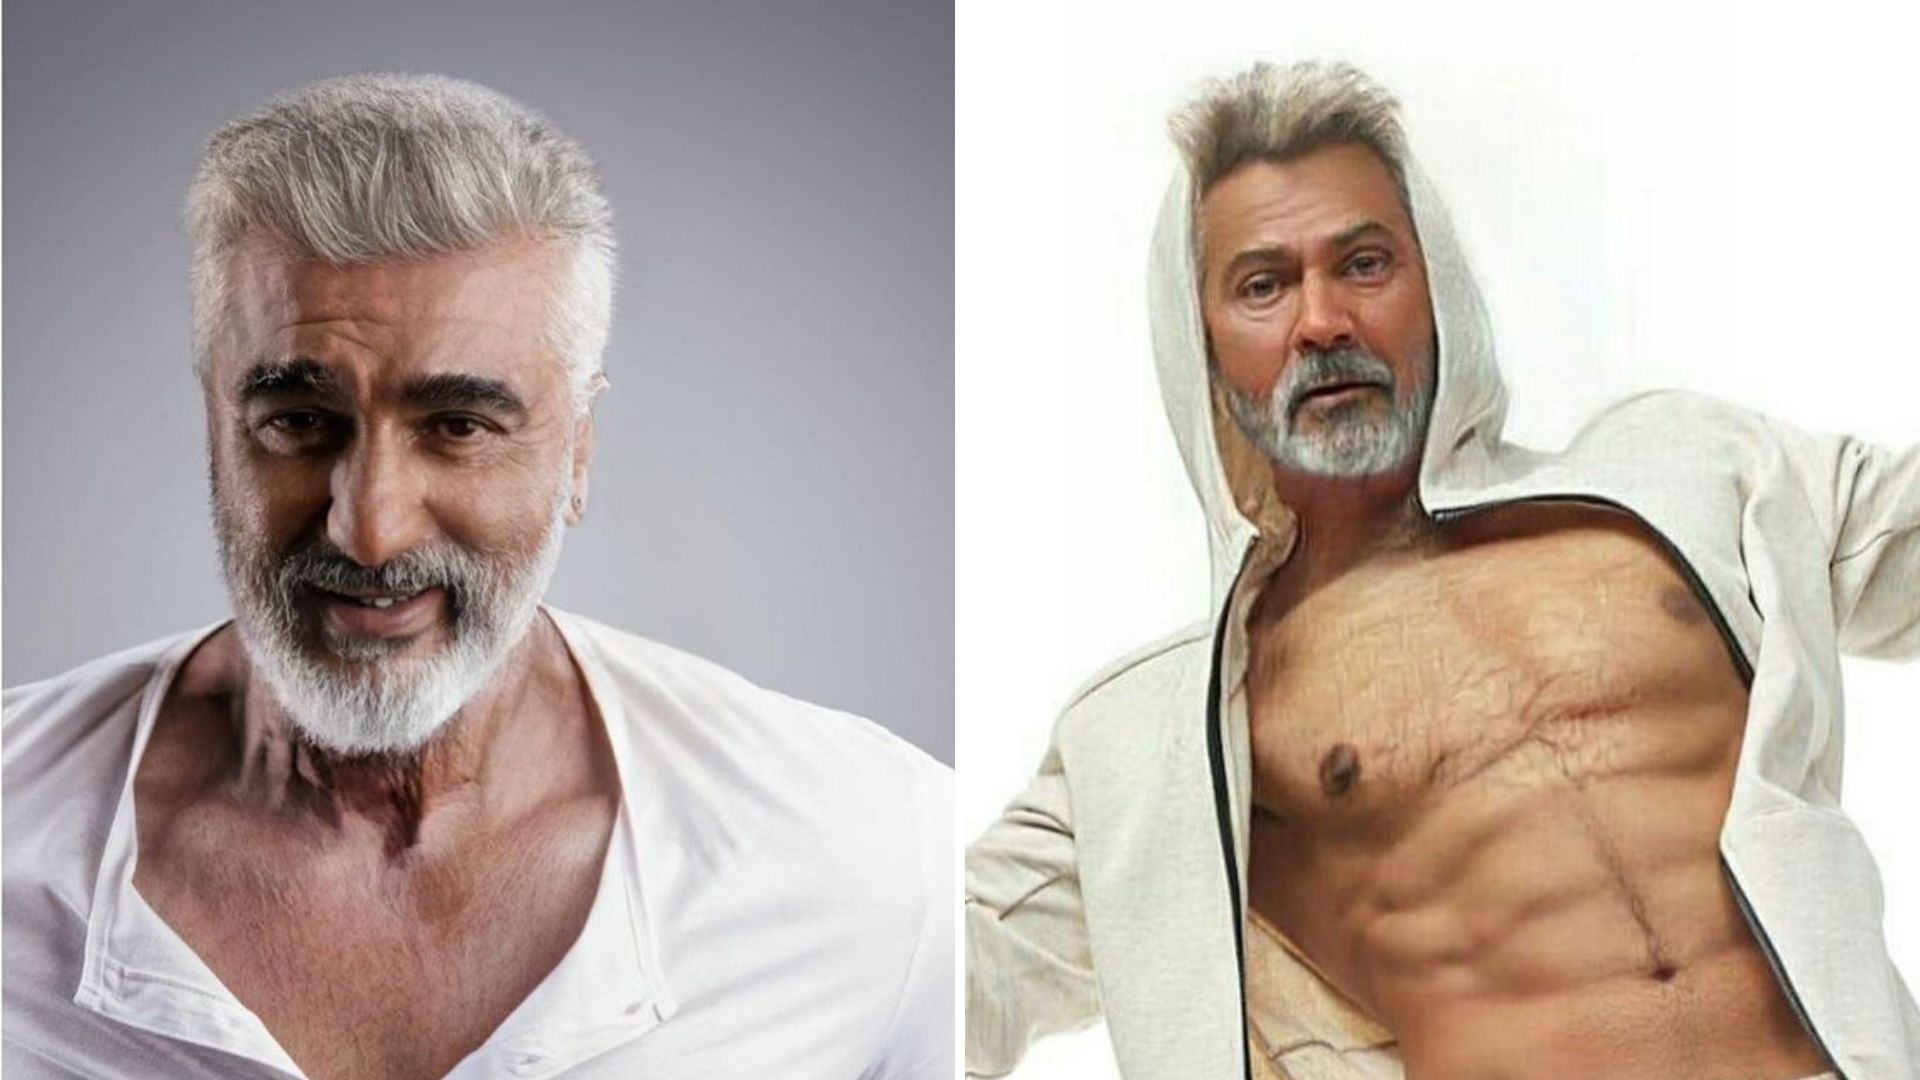 'Old Age' Hits These Two Actors, and You Can't Guess Who They Are!